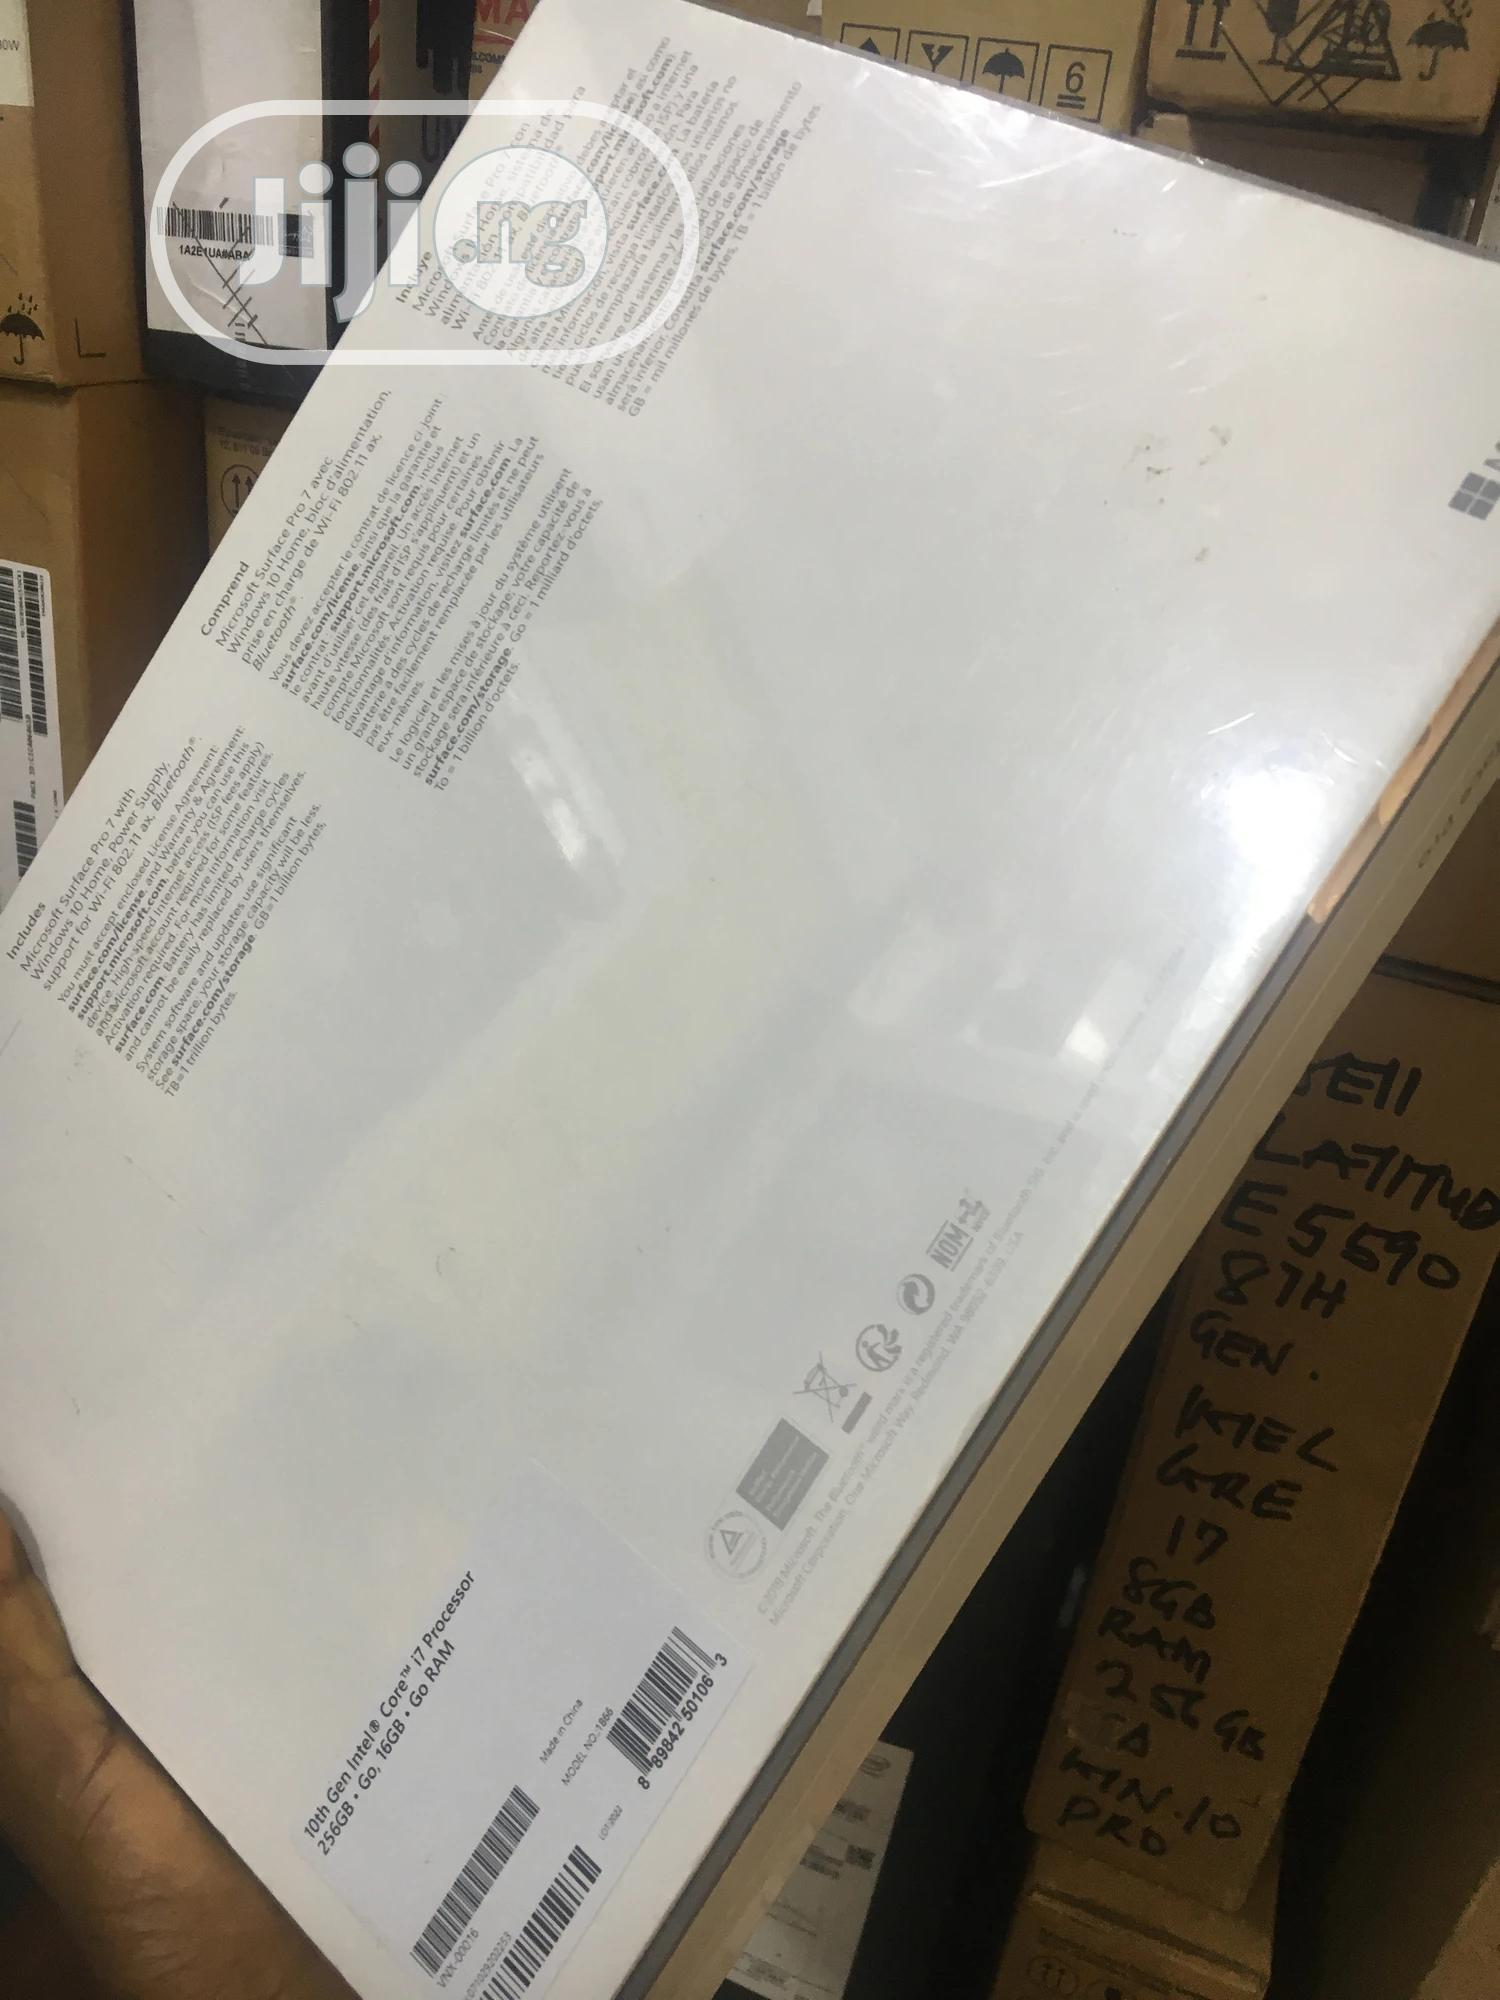 New Laptop Microsoft Surface Pro 16GB Intel Core i7 SSD 256GB | Laptops & Computers for sale in Ikeja, Lagos State, Nigeria